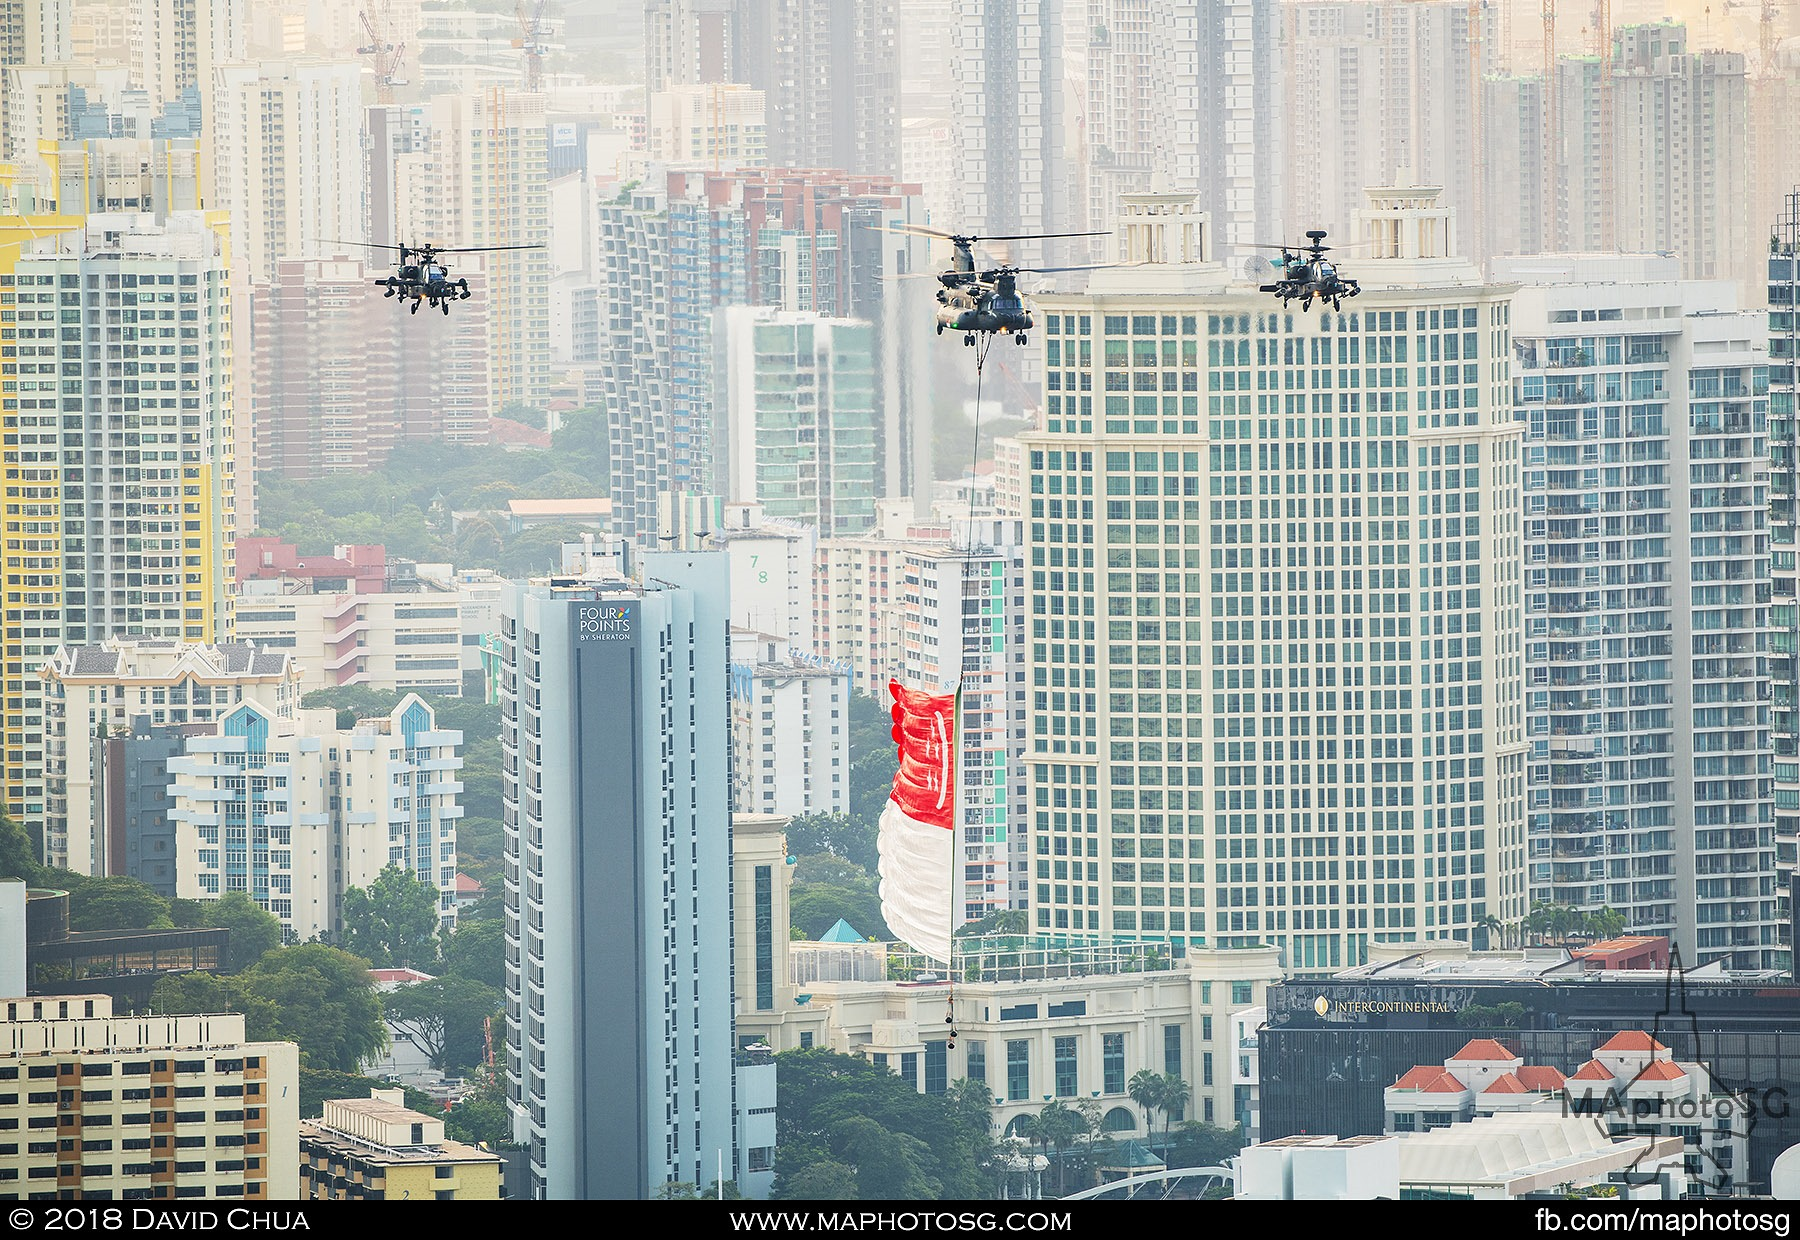 16. State flag fly past helicopters consisting of one RSAF CH-47D Chinook and two AH-6D Longbow Apaches enroute to the Floating Platform.